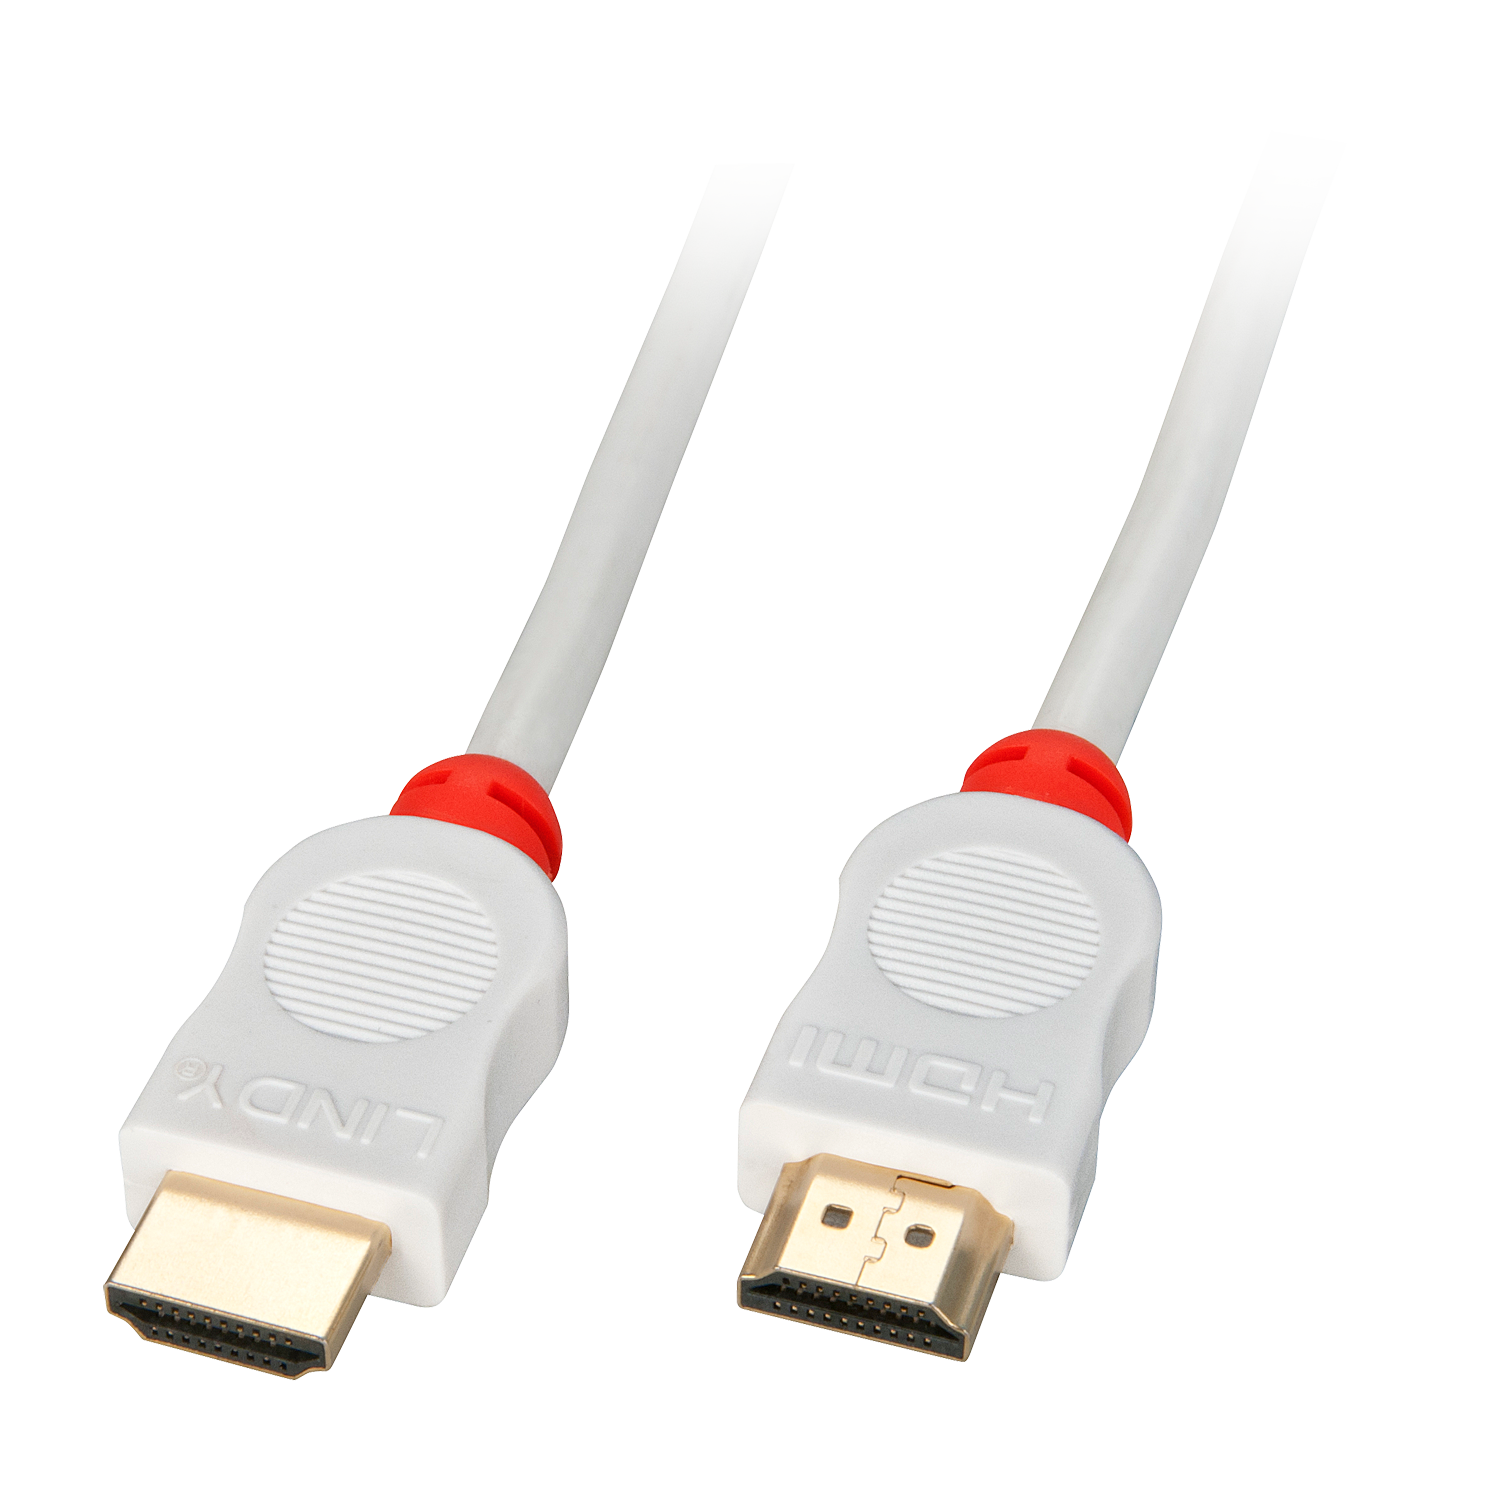 HDMI HighSpeed Kabel weiß 0,5m